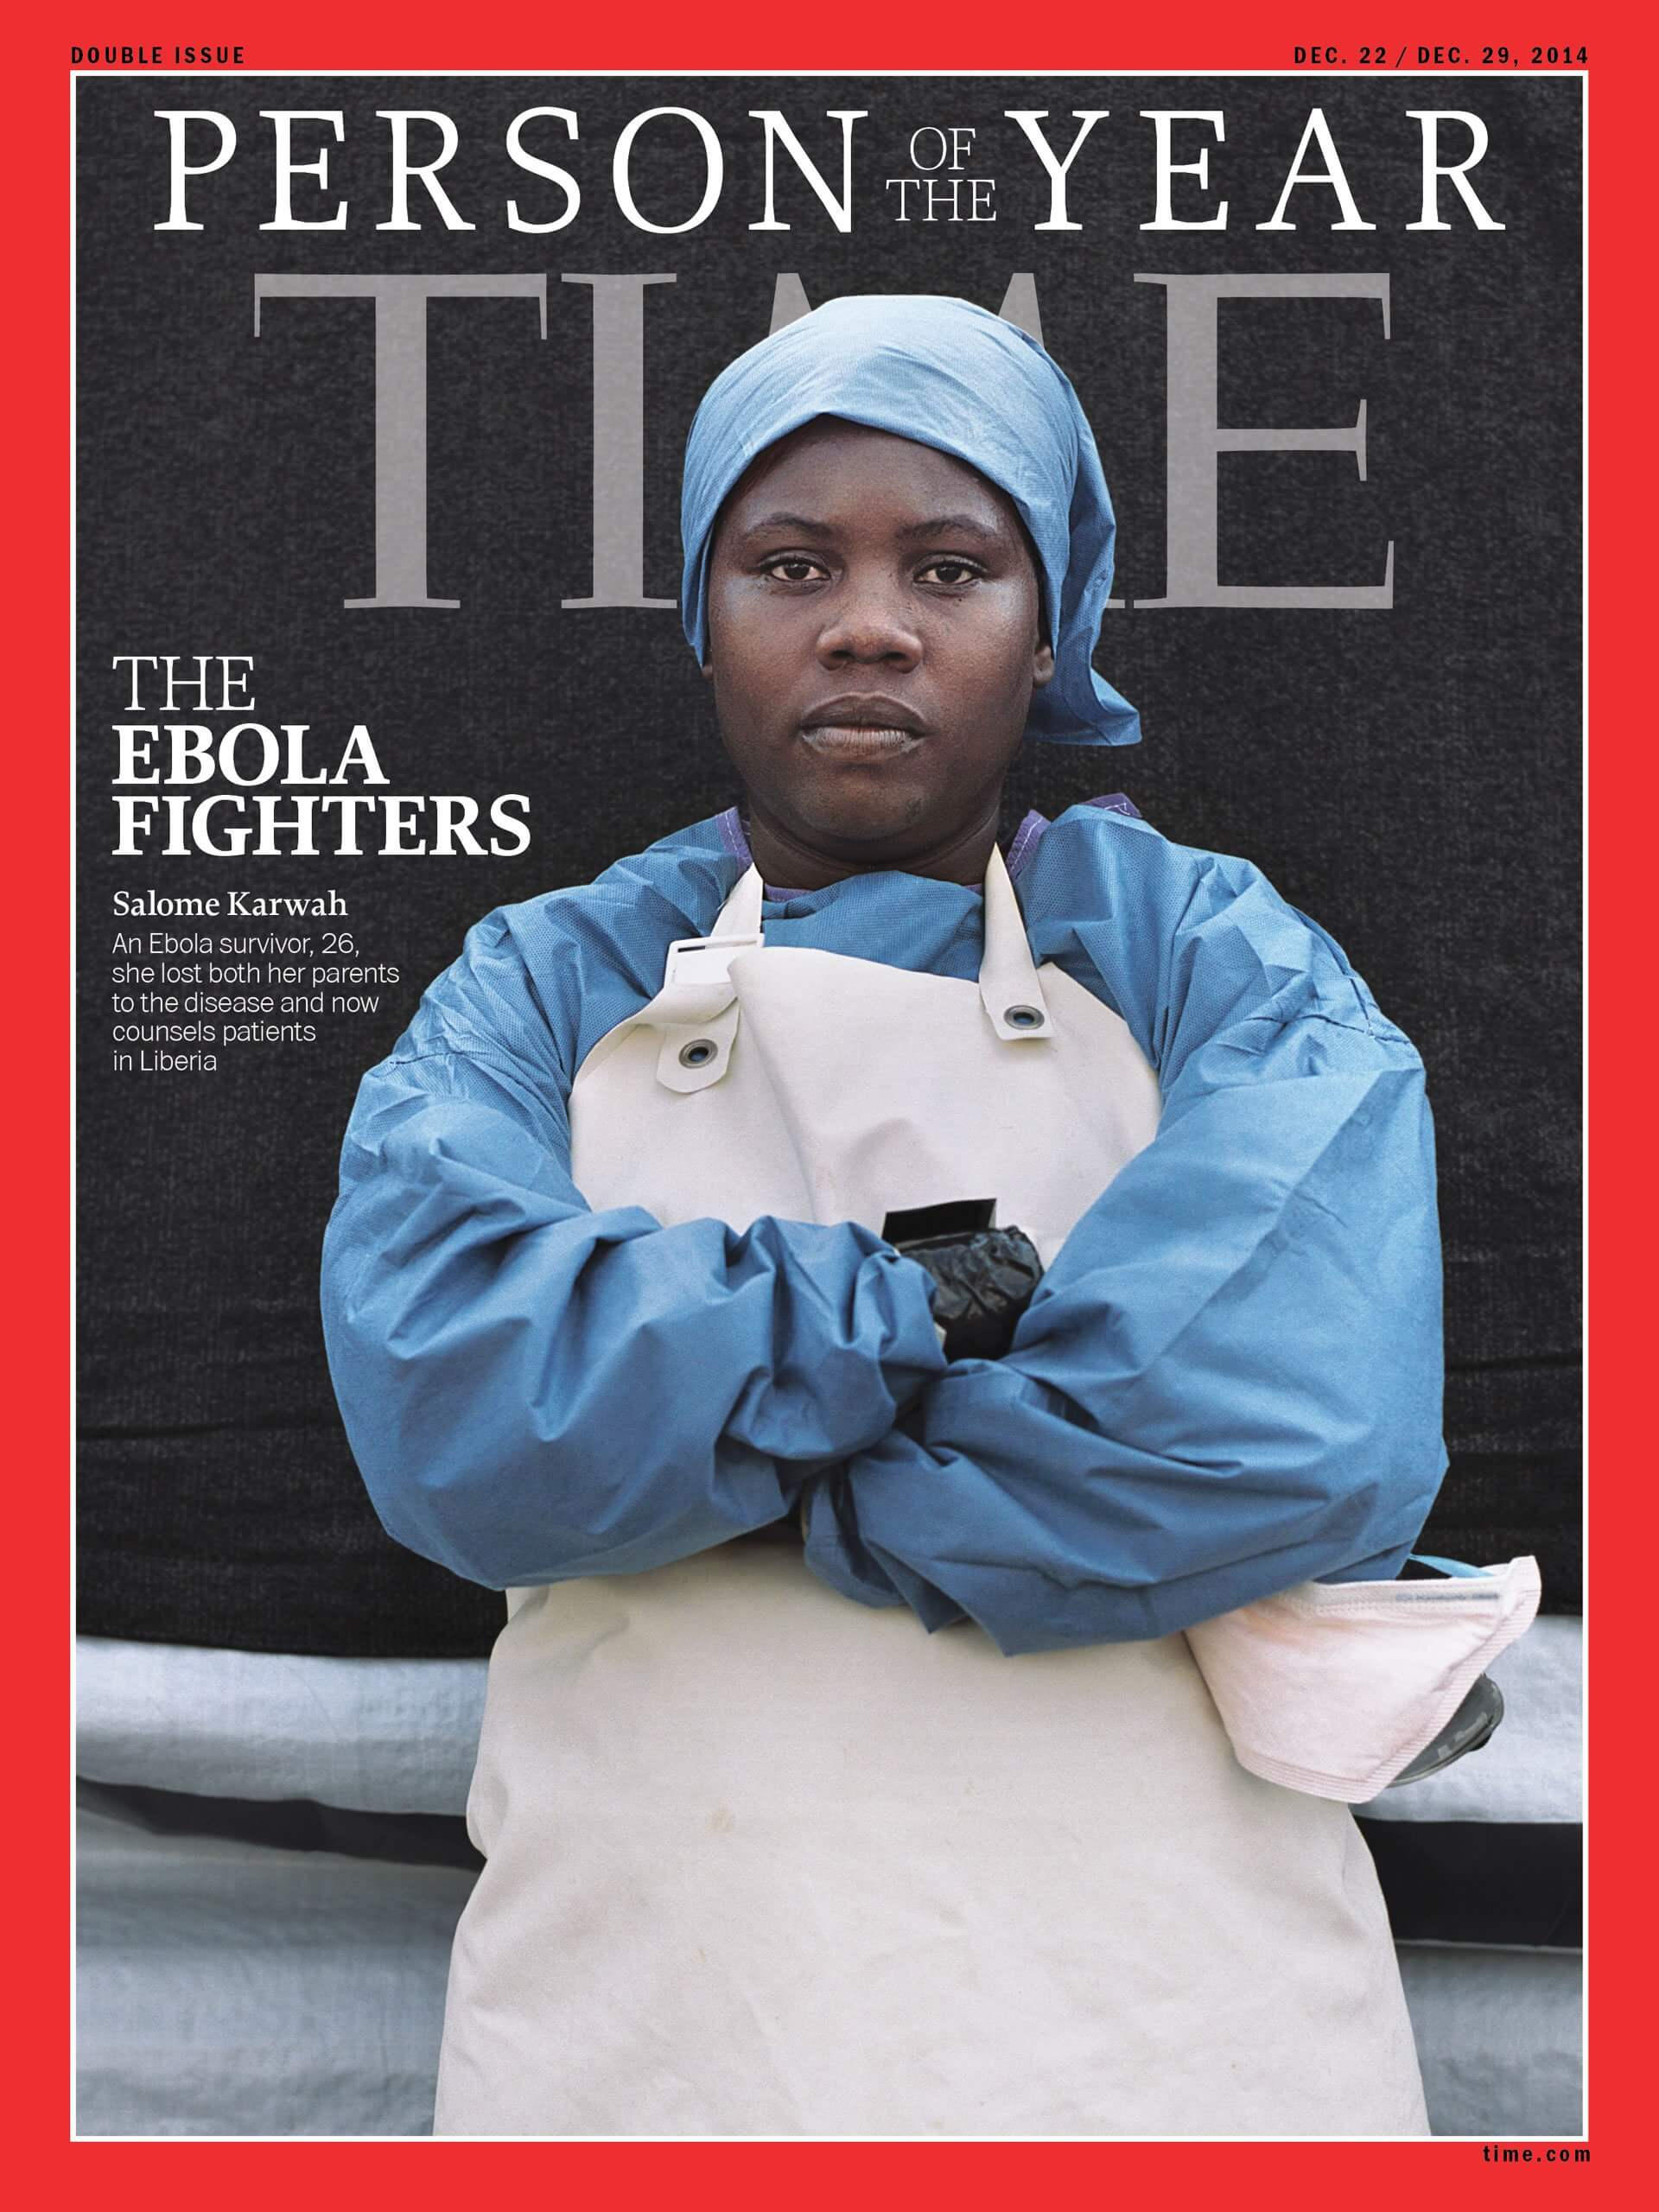 Female Health Worker in Uniform Poses with Arms Crossed